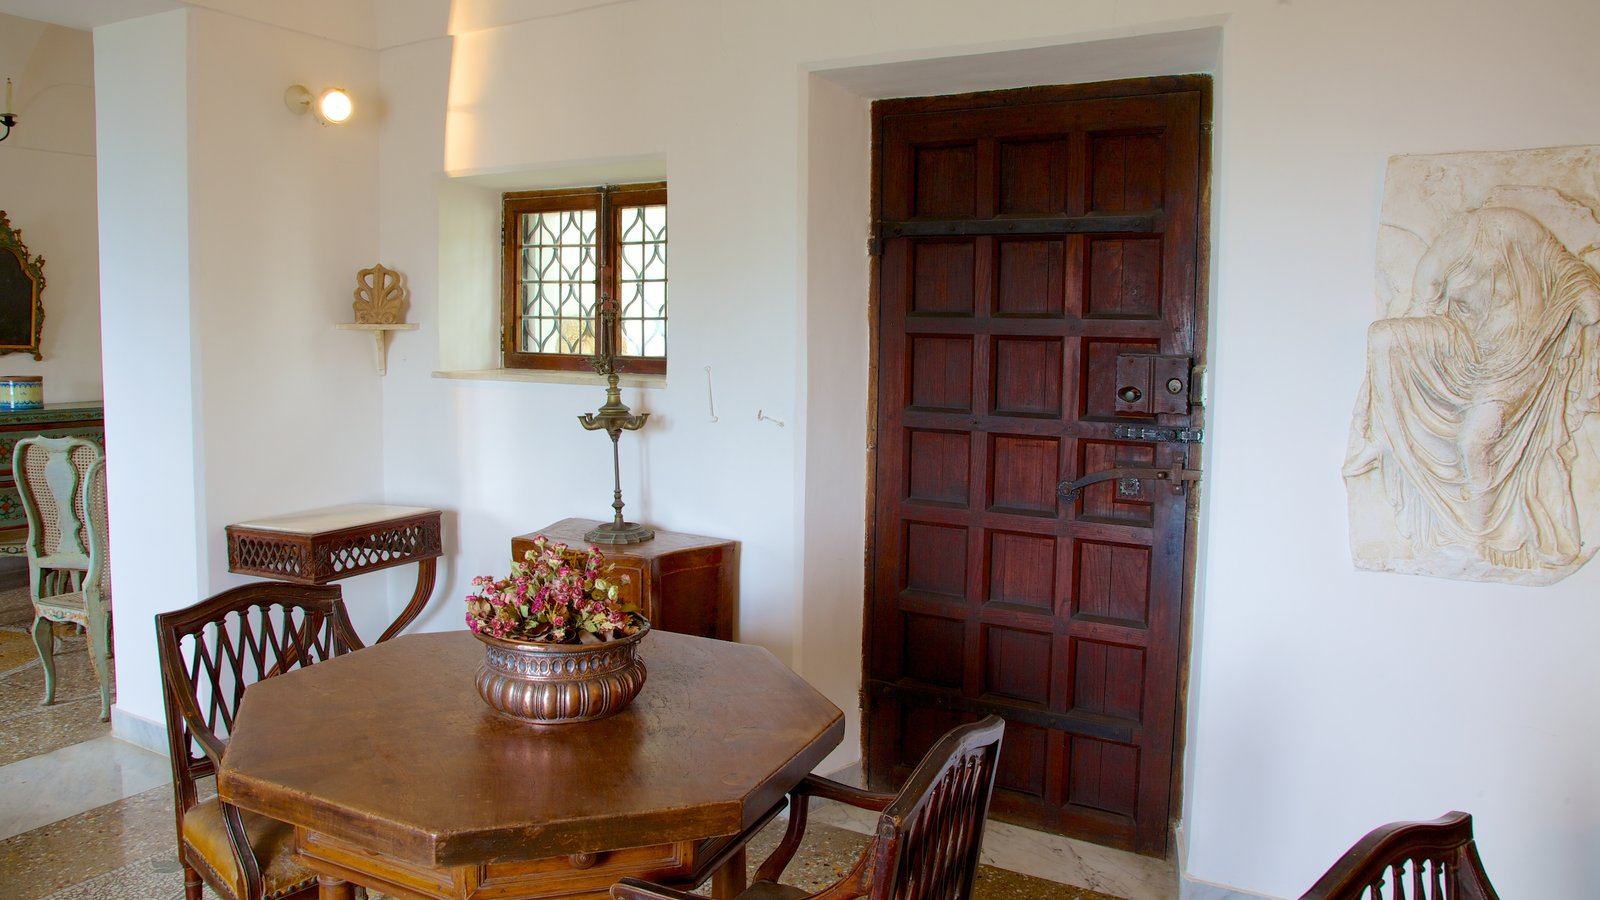 Villa San Michele which includes flowers, a house and interior views